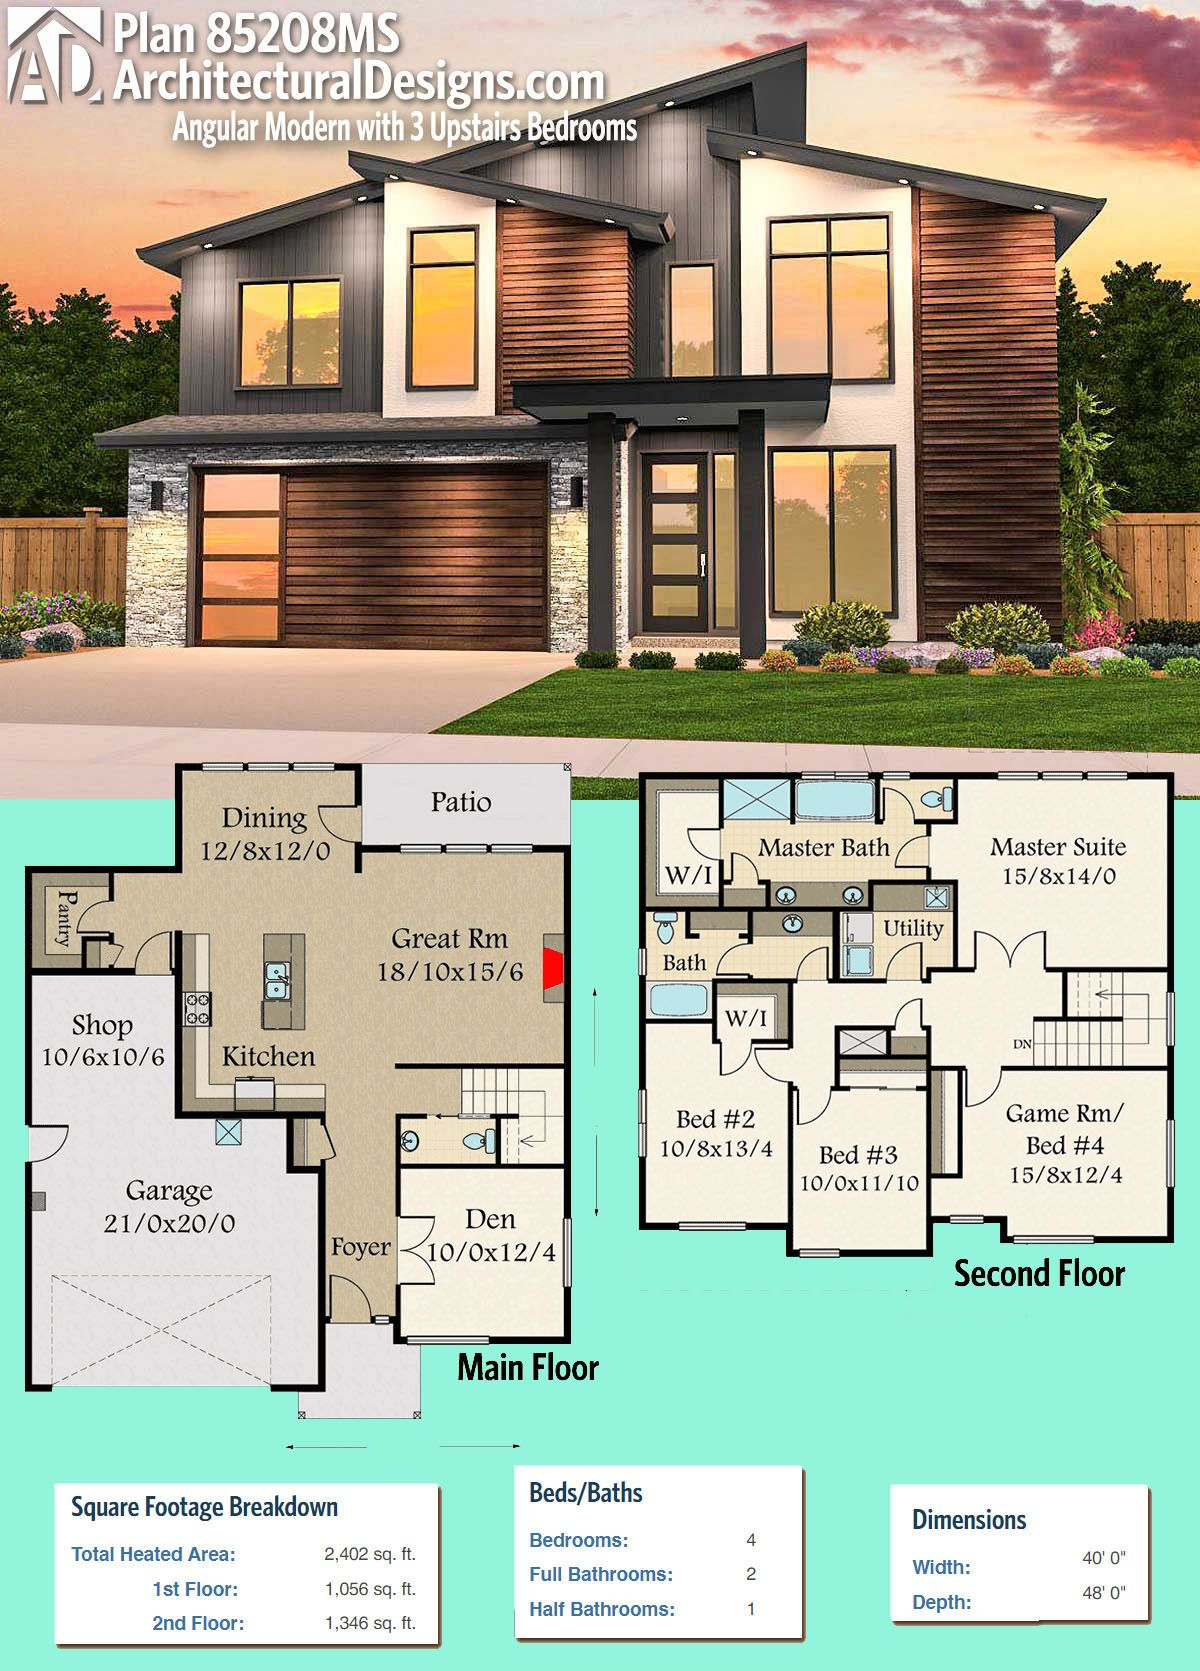 Plan 85208MS Angular Modern House Plan with 3 Upstairs